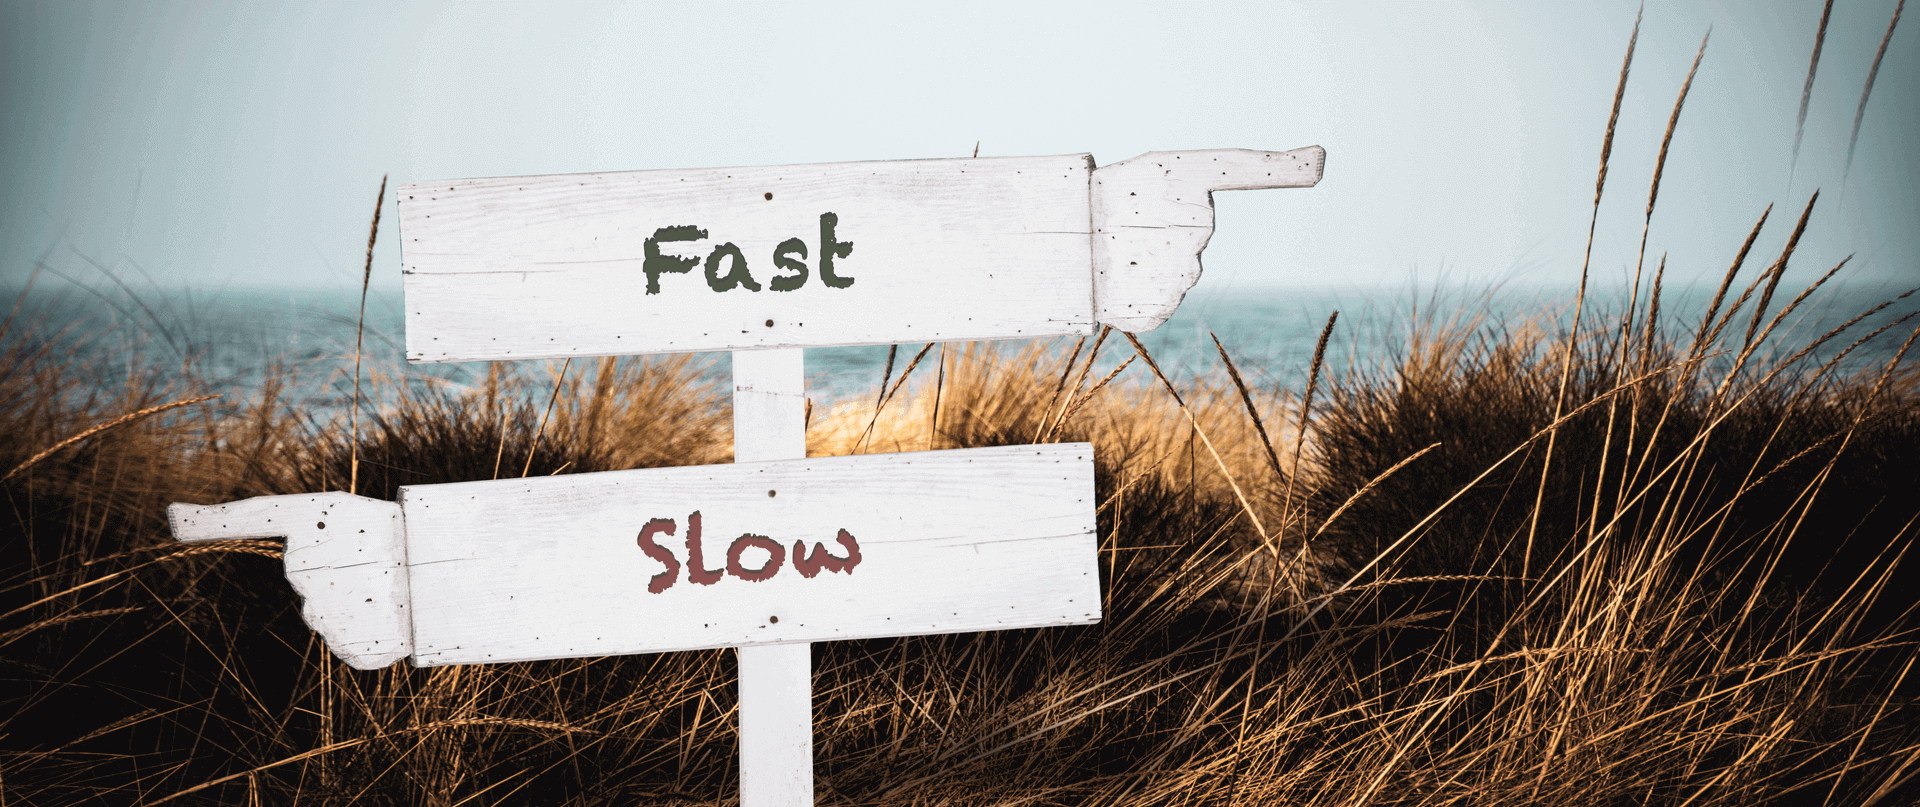 Rebrand approach - fast or slow